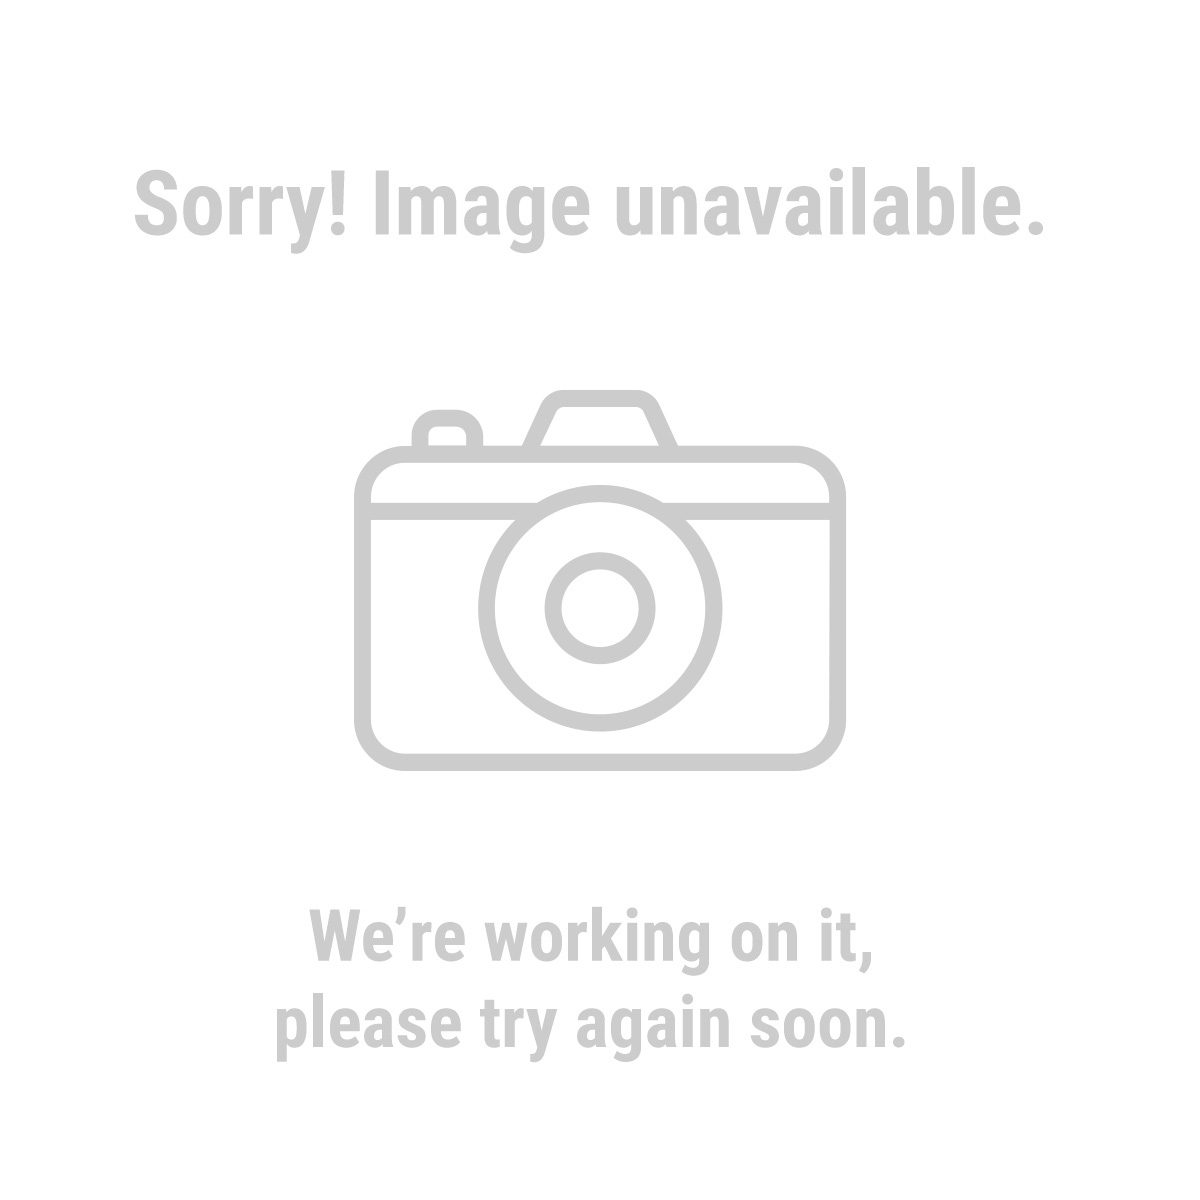 94397 16'' L x 5-1/2'' W x 5-1/2'' H Collapsible Small Animal Trap